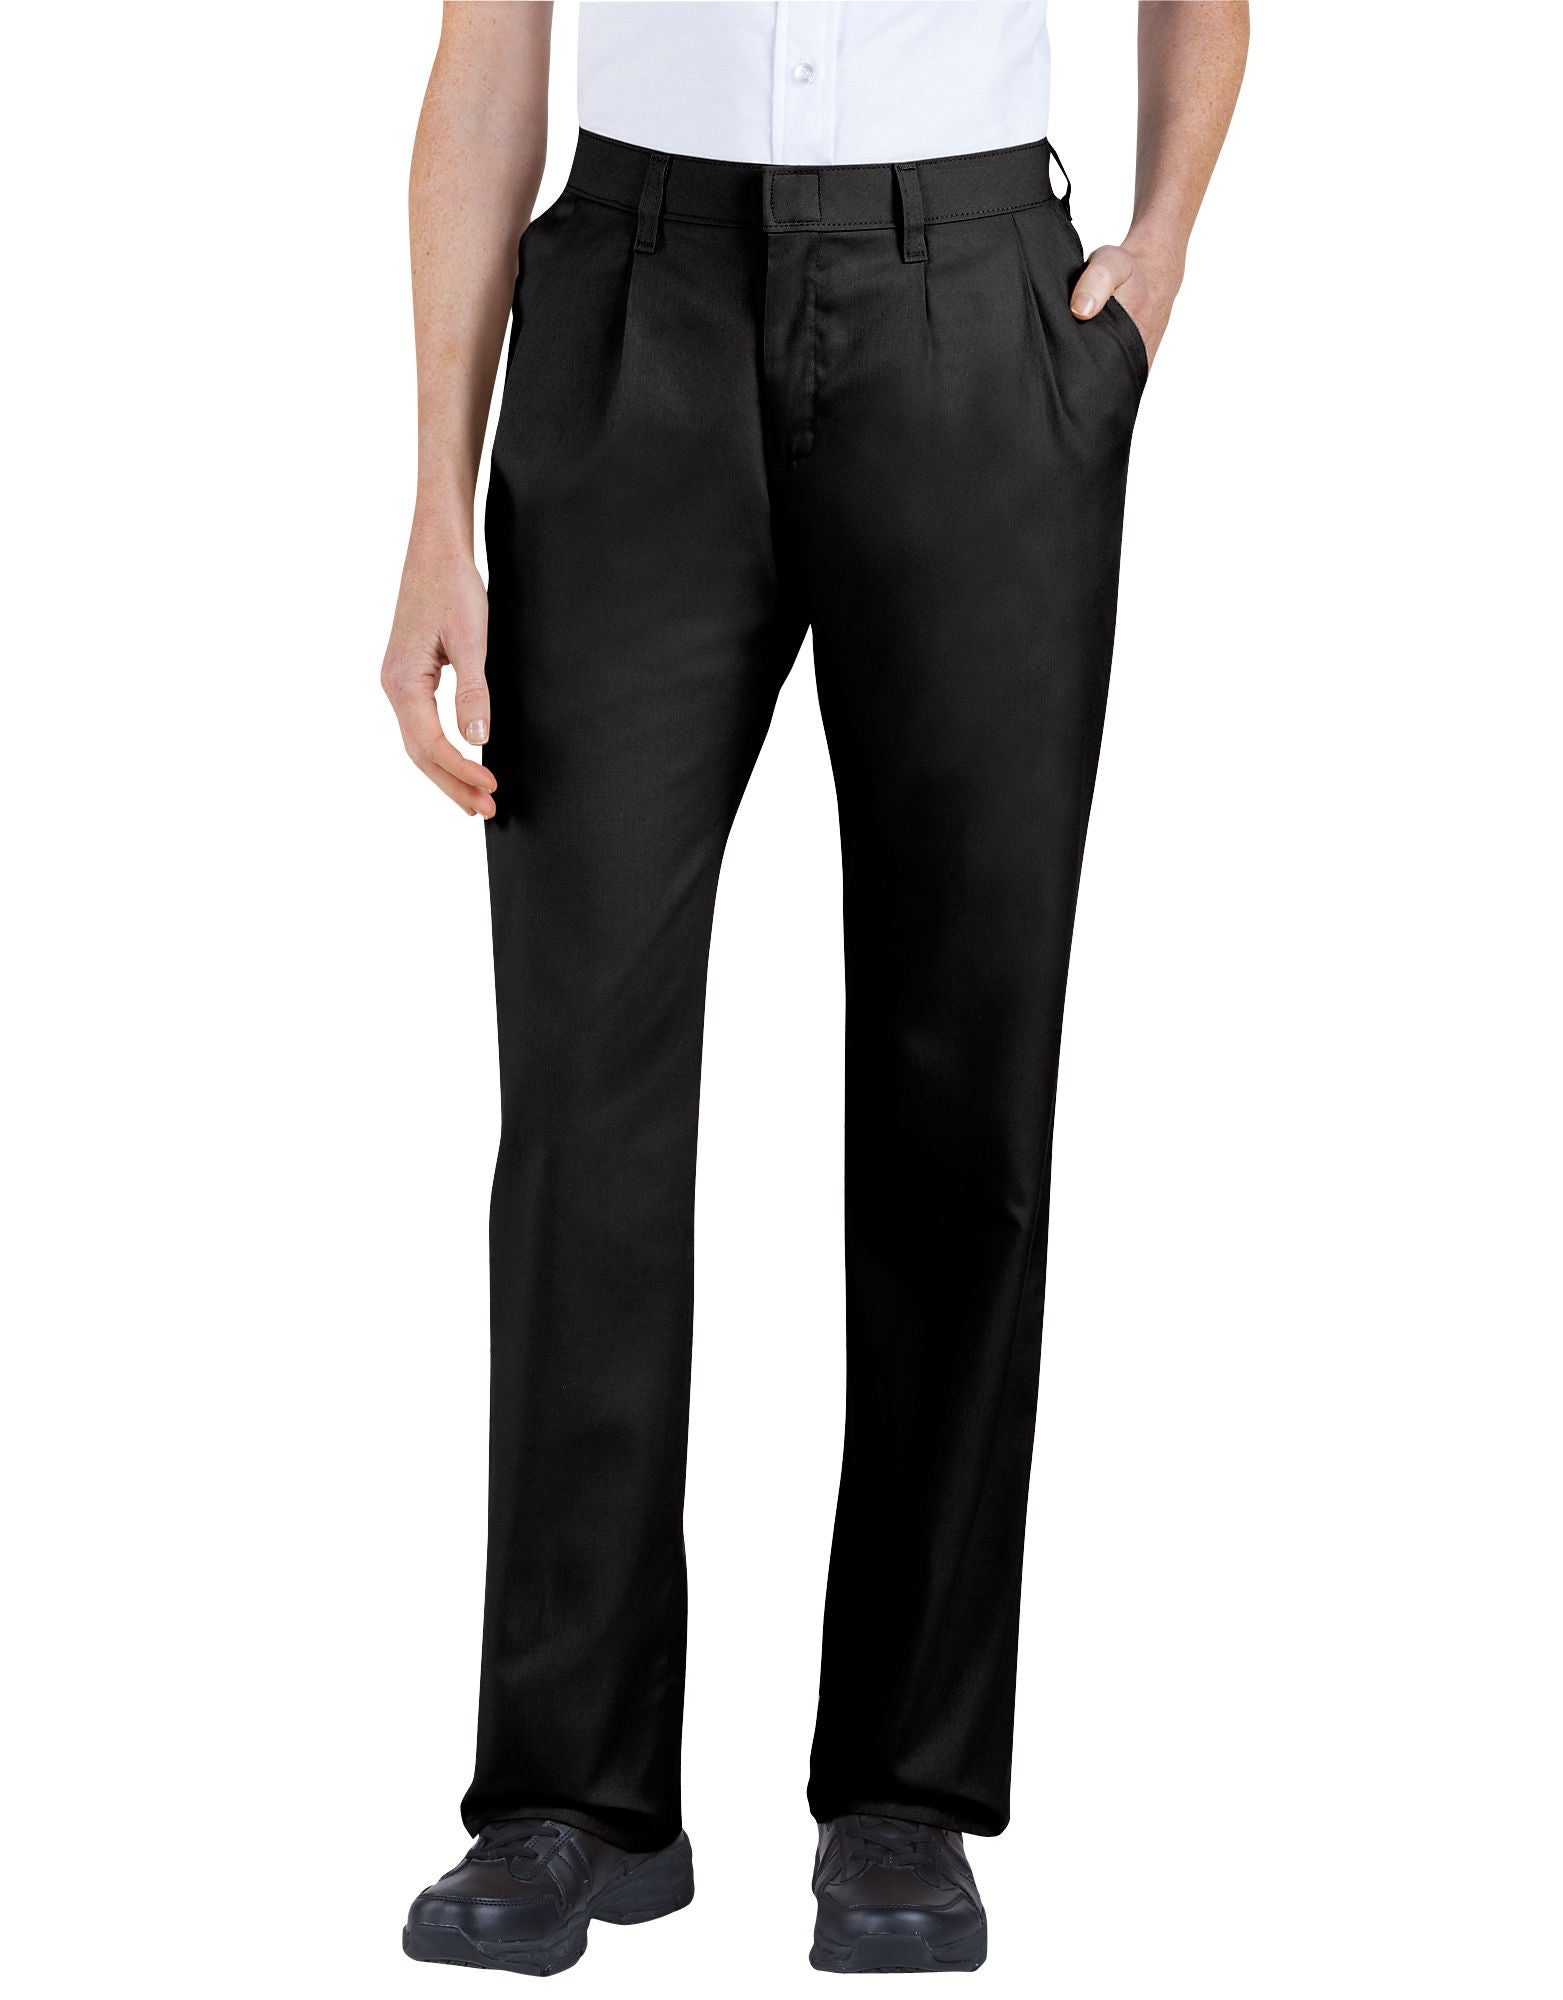 3d9e18d89e DIC-FP220 - Dickies Womens Relaxed Fit Straight Leg Pleated Front Pants